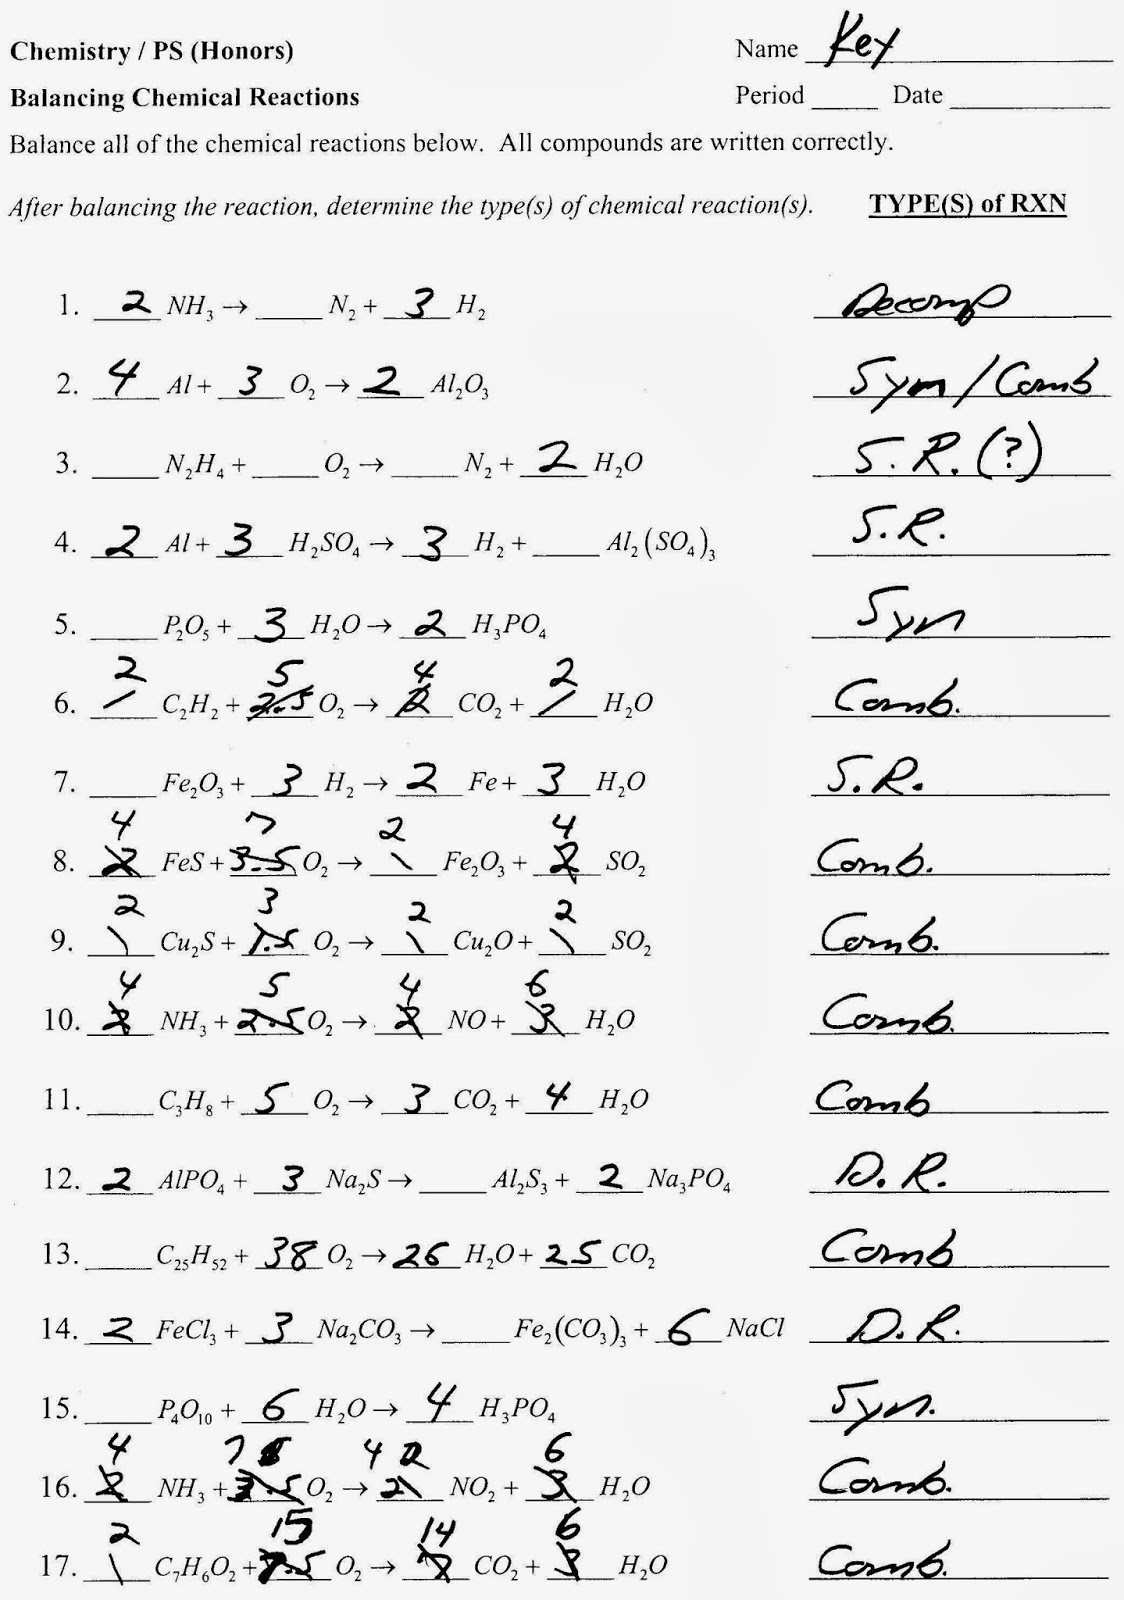 Aldiablosus  Sweet Balancing Chemical Equations Worksheets Balancing Chemical  With Outstanding Balancing Chemical Equations Worksheet Answer Key On Chemistry Double With Cool Group Excel Worksheets Also Free Printable Decimal Worksheets In Addition Calculating Relative Humidity Worksheet And Factoring Practice Worksheets As Well As Make A Matching Worksheet Additionally Addition To  Worksheets Free From Letstalkhiphopus With Aldiablosus  Outstanding Balancing Chemical Equations Worksheets Balancing Chemical  With Cool Balancing Chemical Equations Worksheet Answer Key On Chemistry Double And Sweet Group Excel Worksheets Also Free Printable Decimal Worksheets In Addition Calculating Relative Humidity Worksheet From Letstalkhiphopus